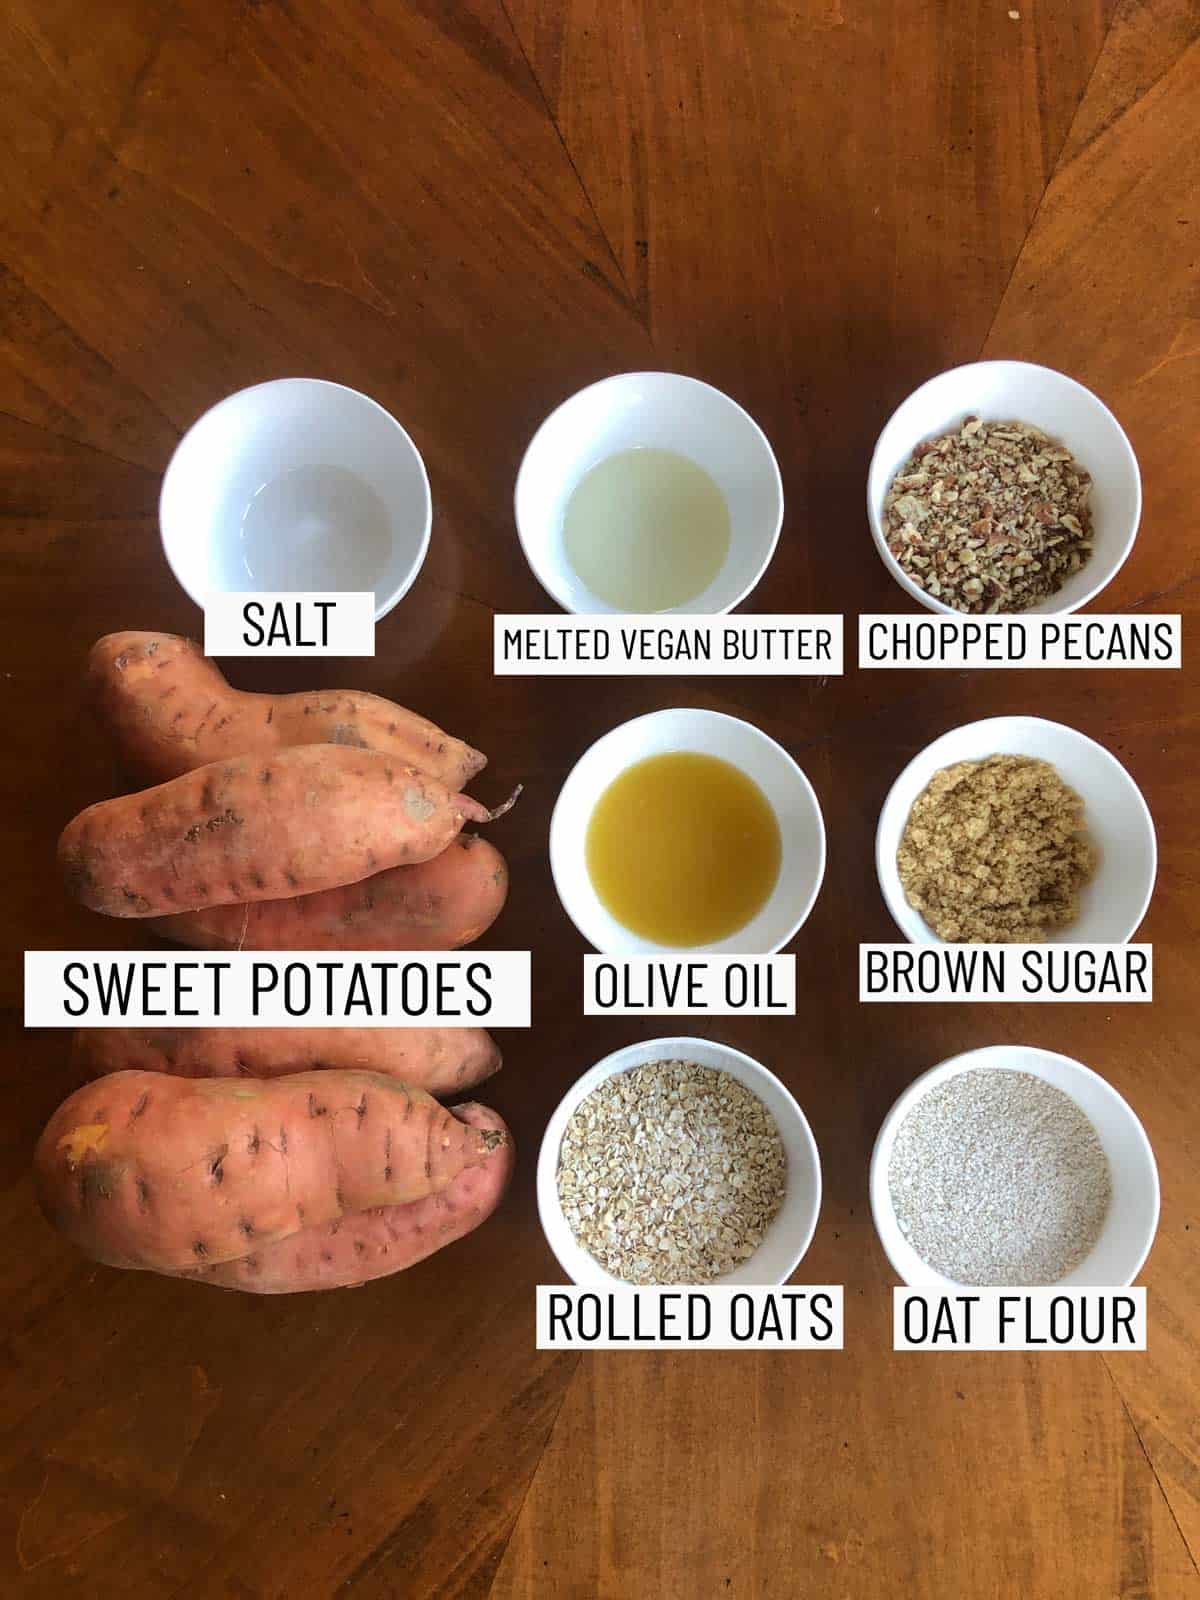 Overhead shot of ingredients to make vegan hasselback sweet potatoes: salt, melted vegan butter, chopped pecans, sweet potatoes, olive oil, brown sugar, rolled oats, and oat flour.